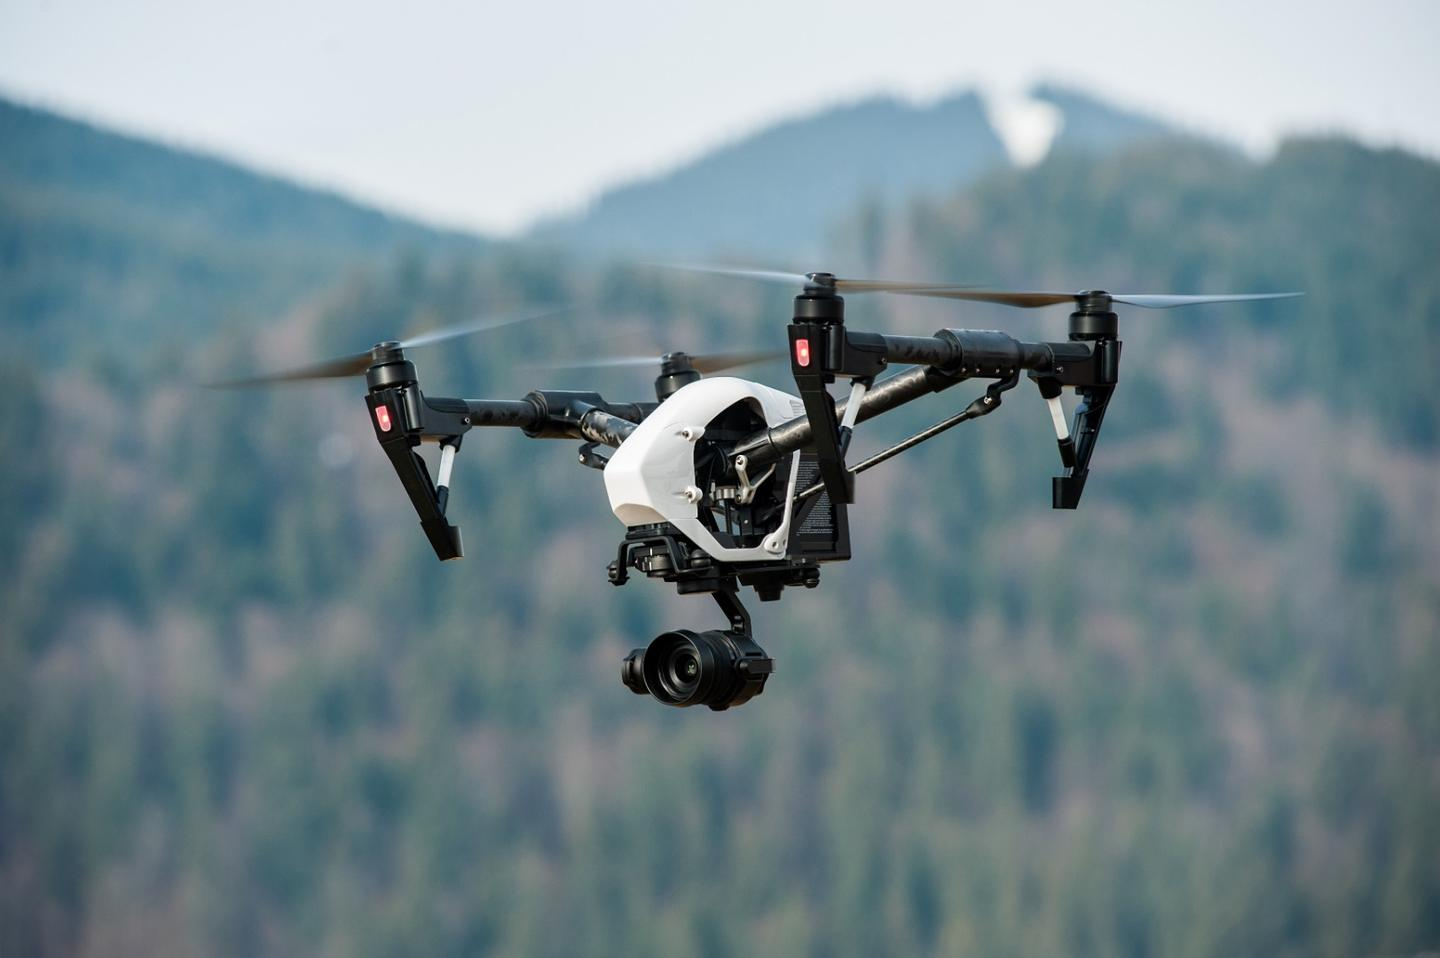 The range of technologies designed to take suspicious drones out the sky is growing wider and wider